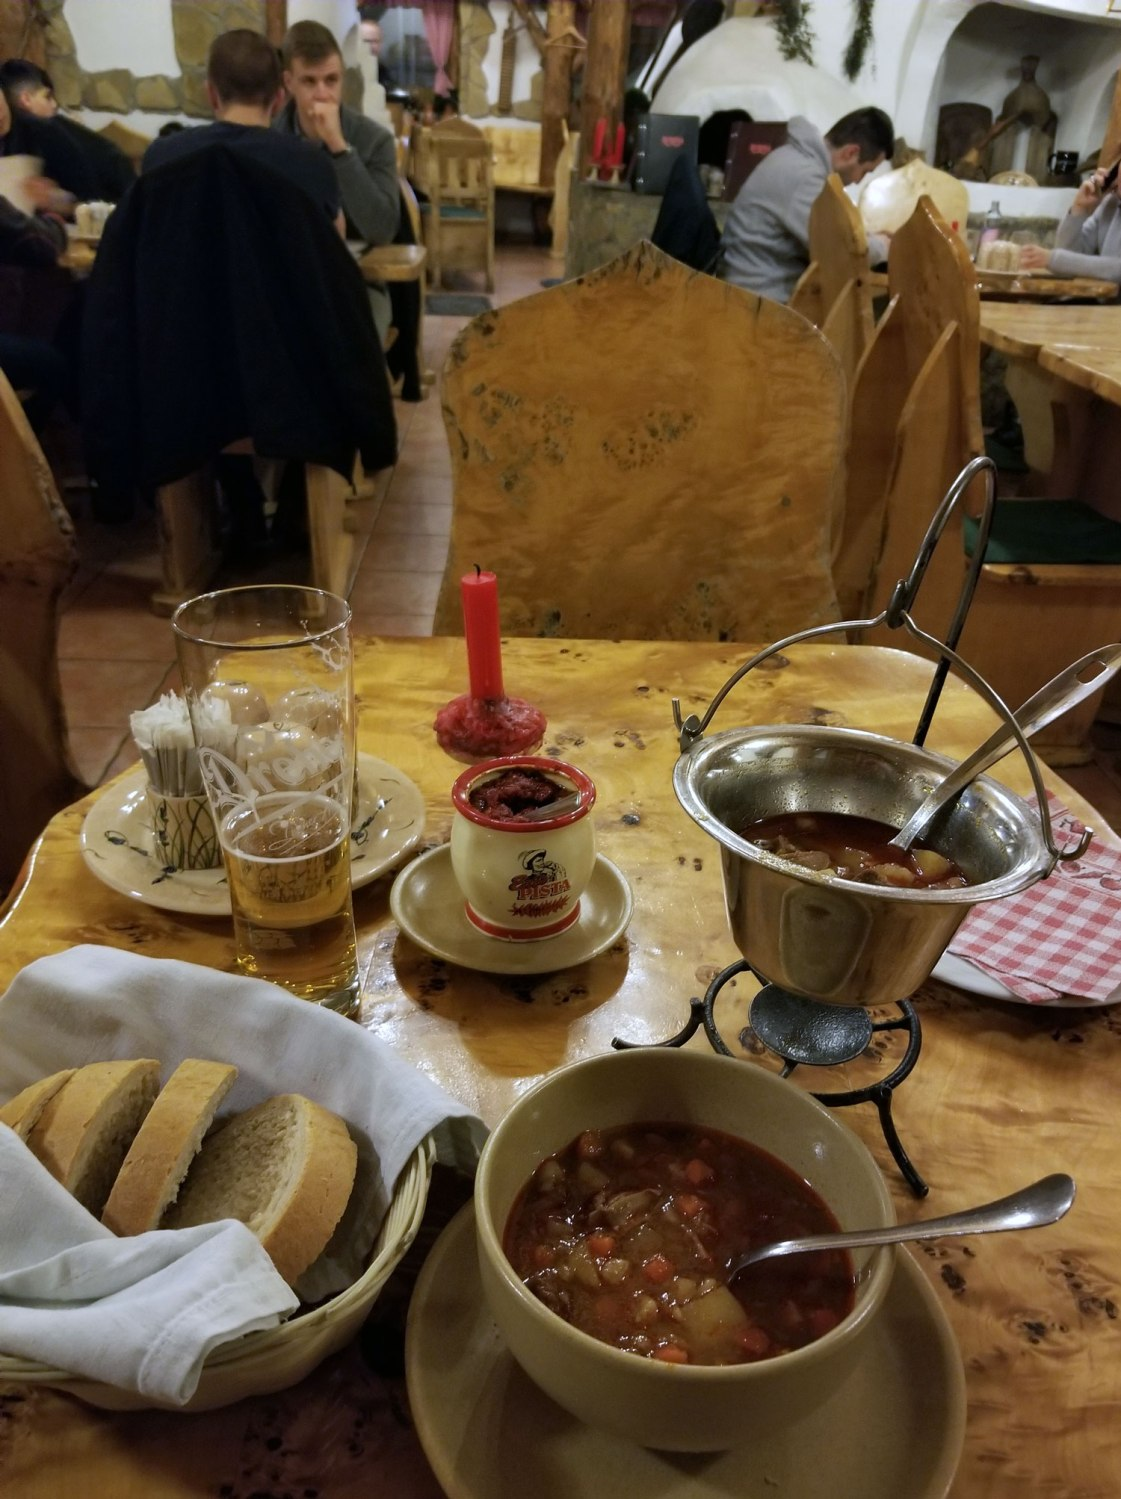 Hungary-Budapest-Food-And-Drink-Goulash